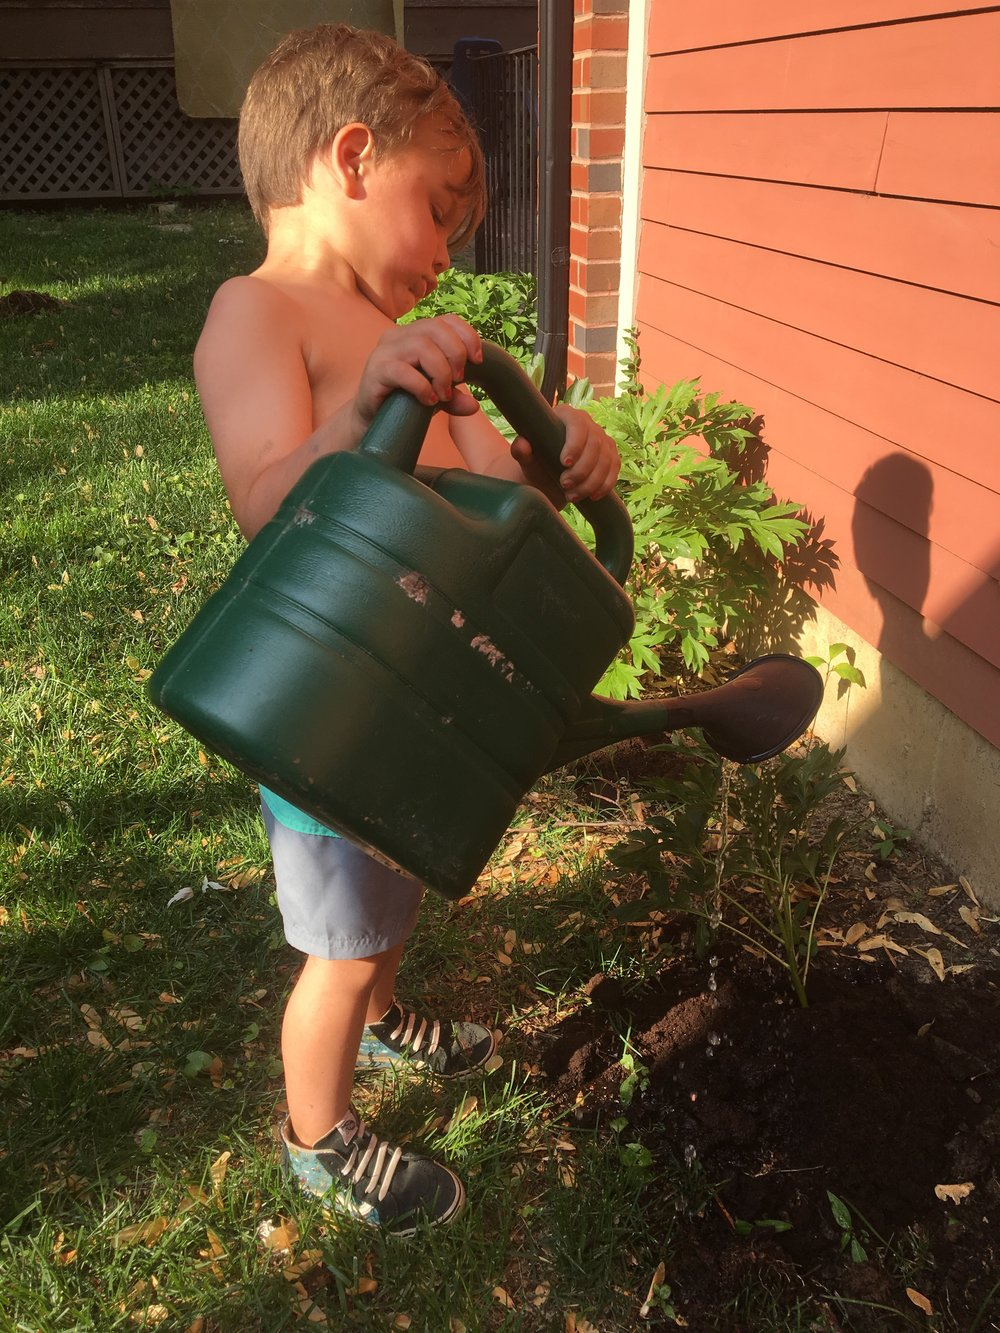 Look at my handsome little garden helper!